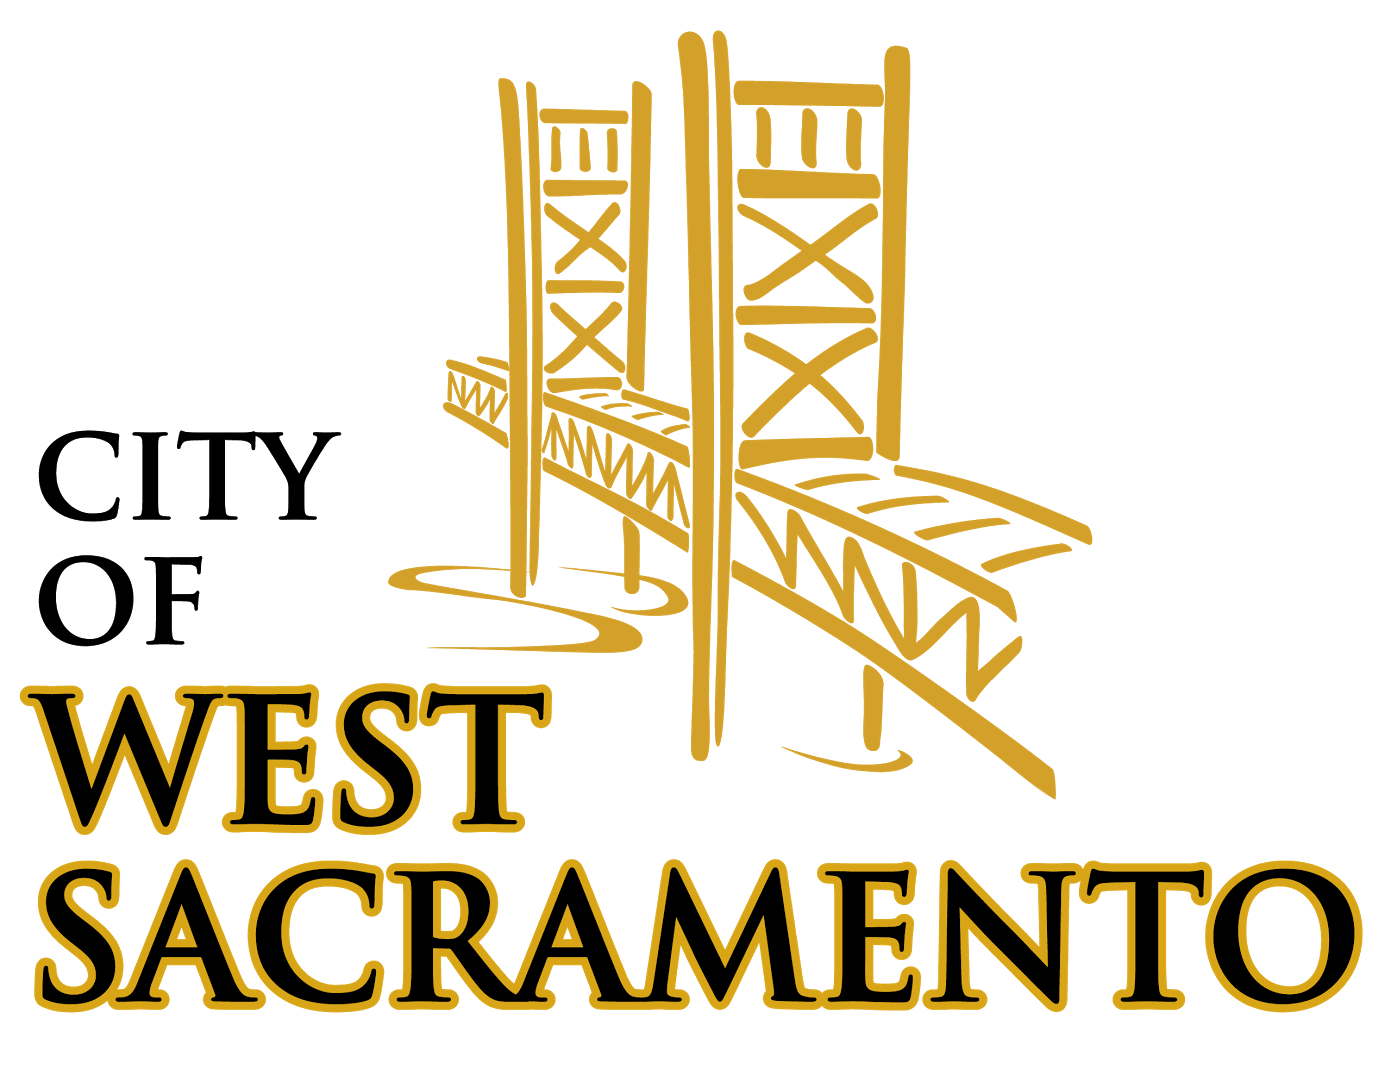 City of West Sacramento